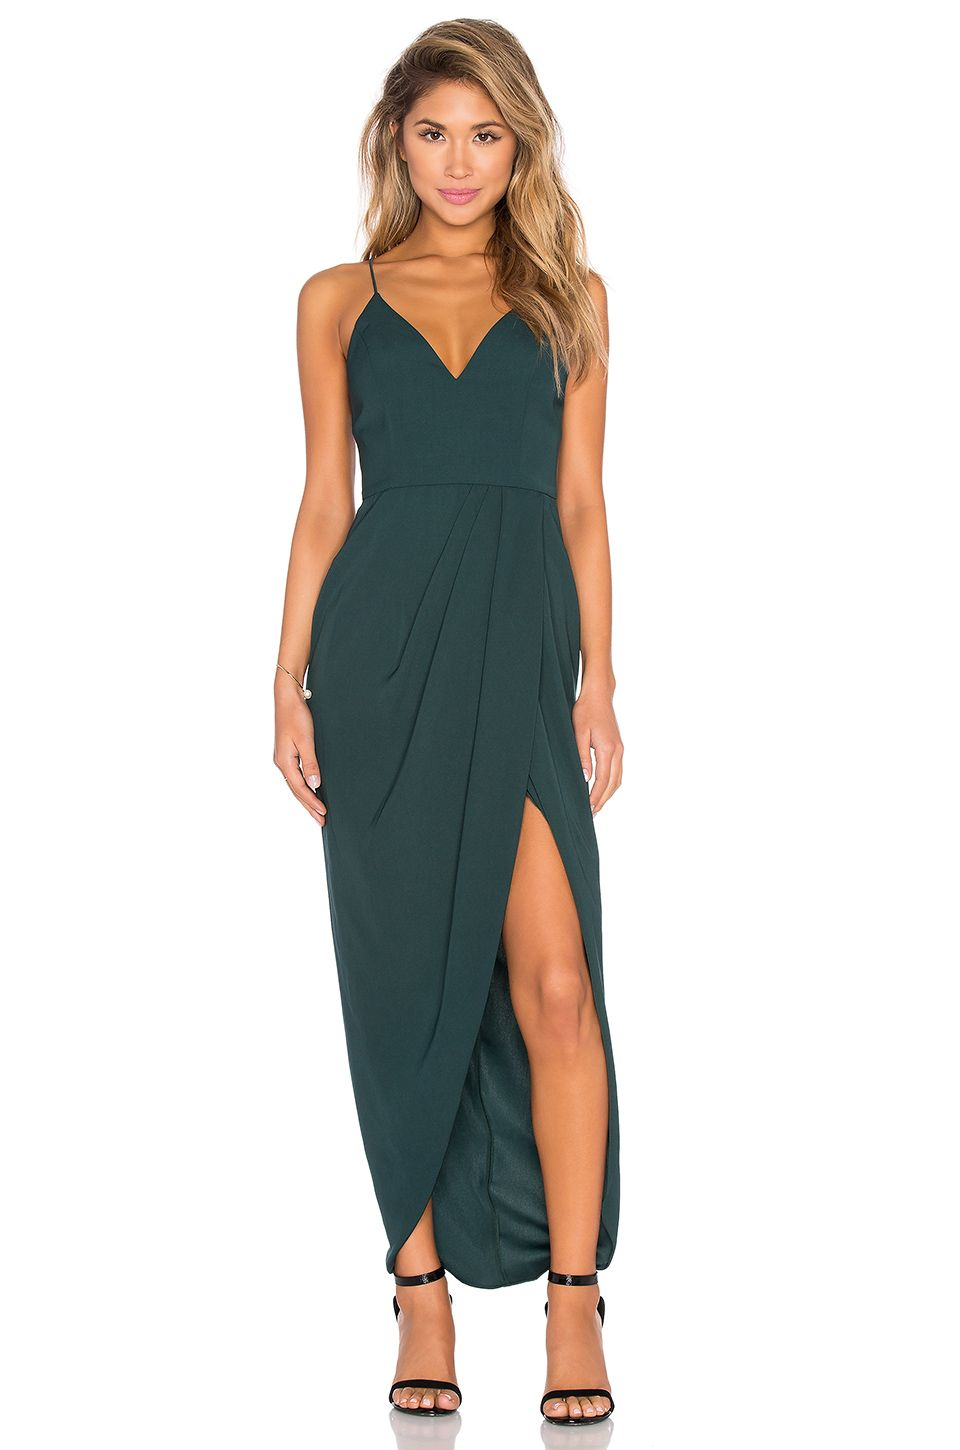 Shona Joy Cocktail Draped Dress In Seaweed Revolve Guest Attire Wedding Guest Dress Summer Guest Dresses This royal blue sheath with waist details is just the ticket. pinterest